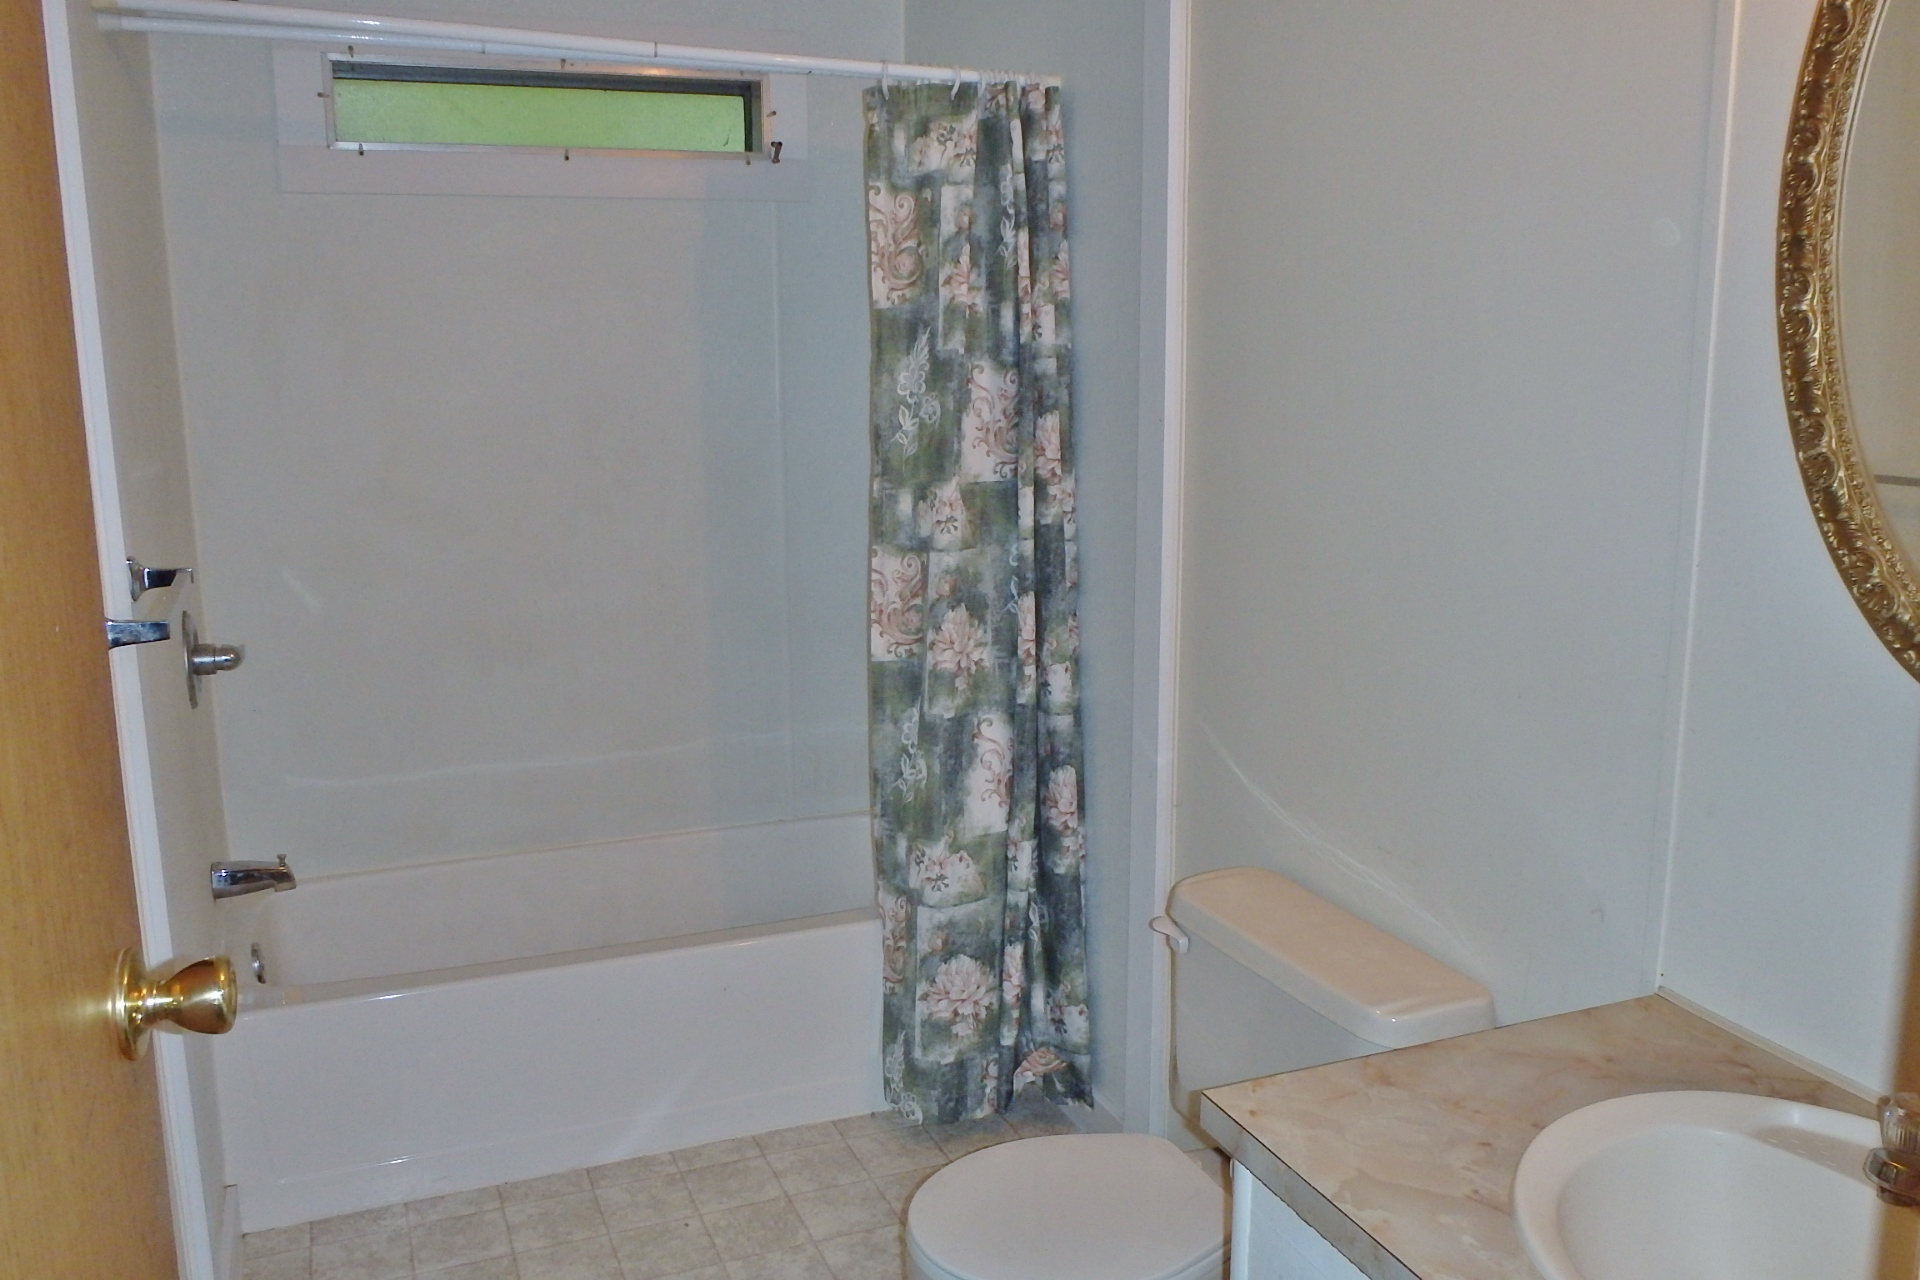 Bathroom photo of the 2-bedroom house for rent at 107 Driftwood Drive in State College PA.